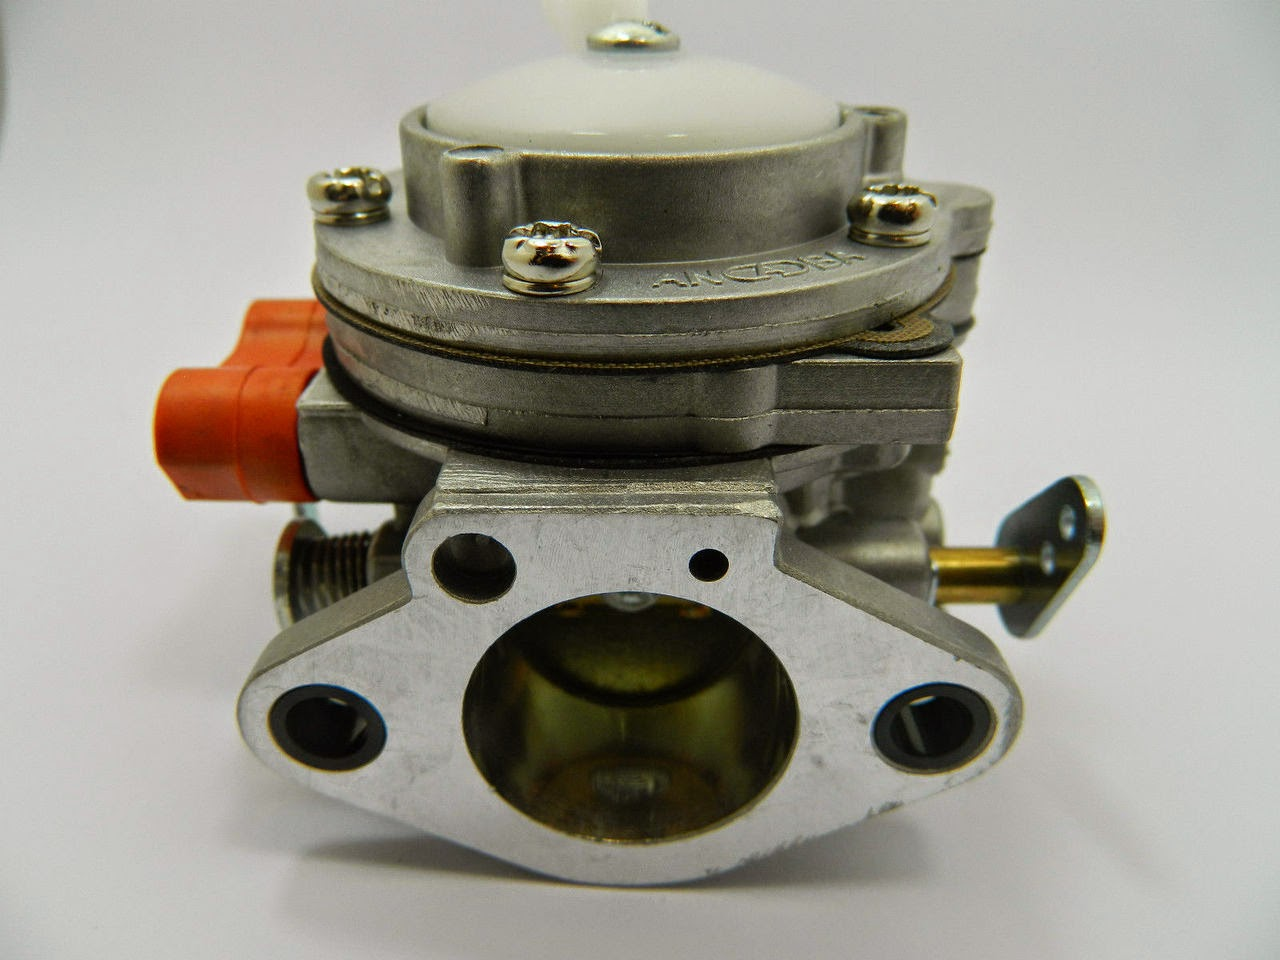 http://www.chainsawpartsonline.co.uk/stihl-070-090-chainsaw-replacement-carburettor-carb-new/